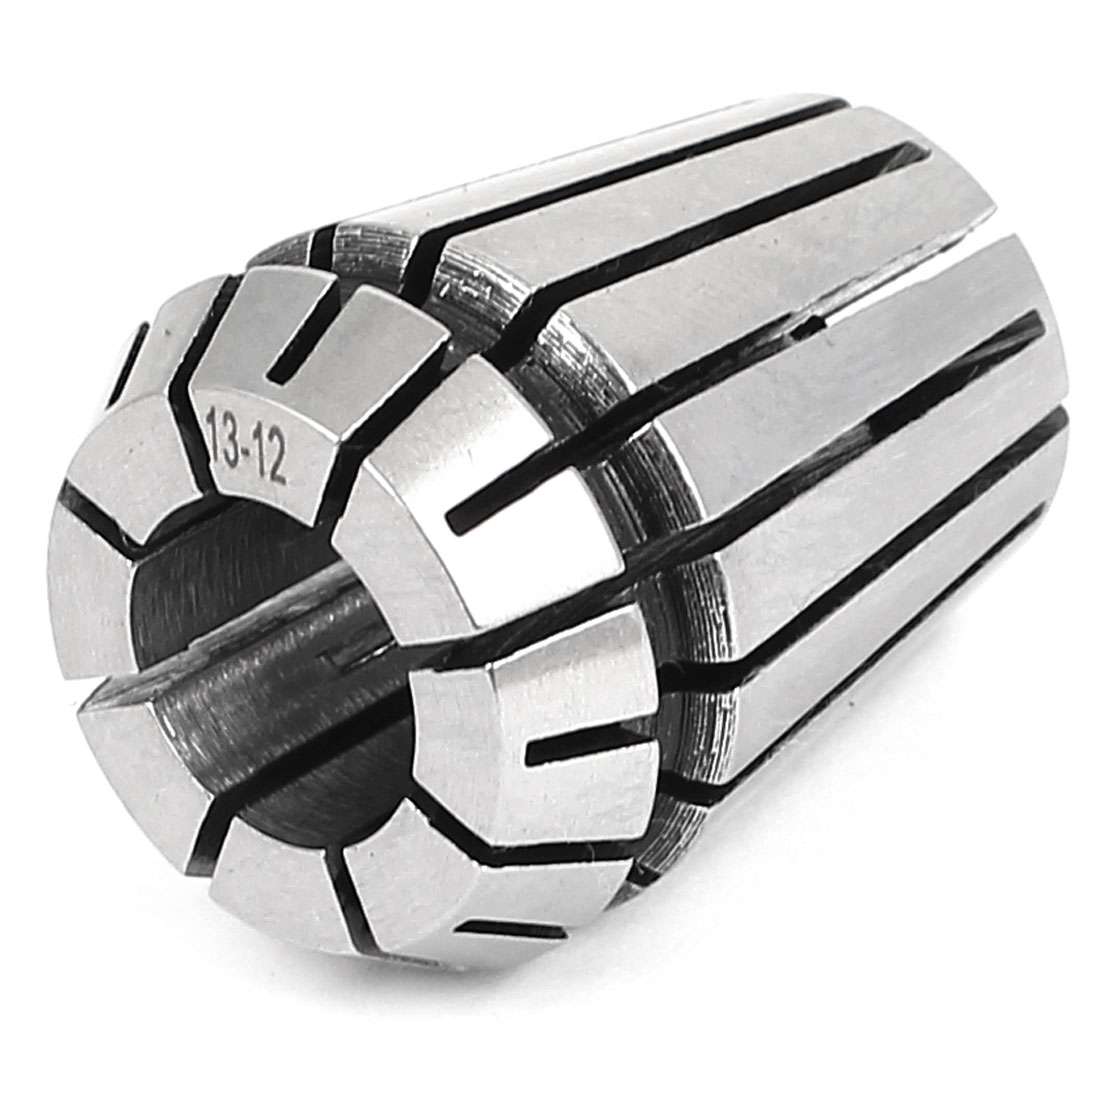 ER25 13mm Clamping Dia CNC Engraving Milling Machine Spring Collet